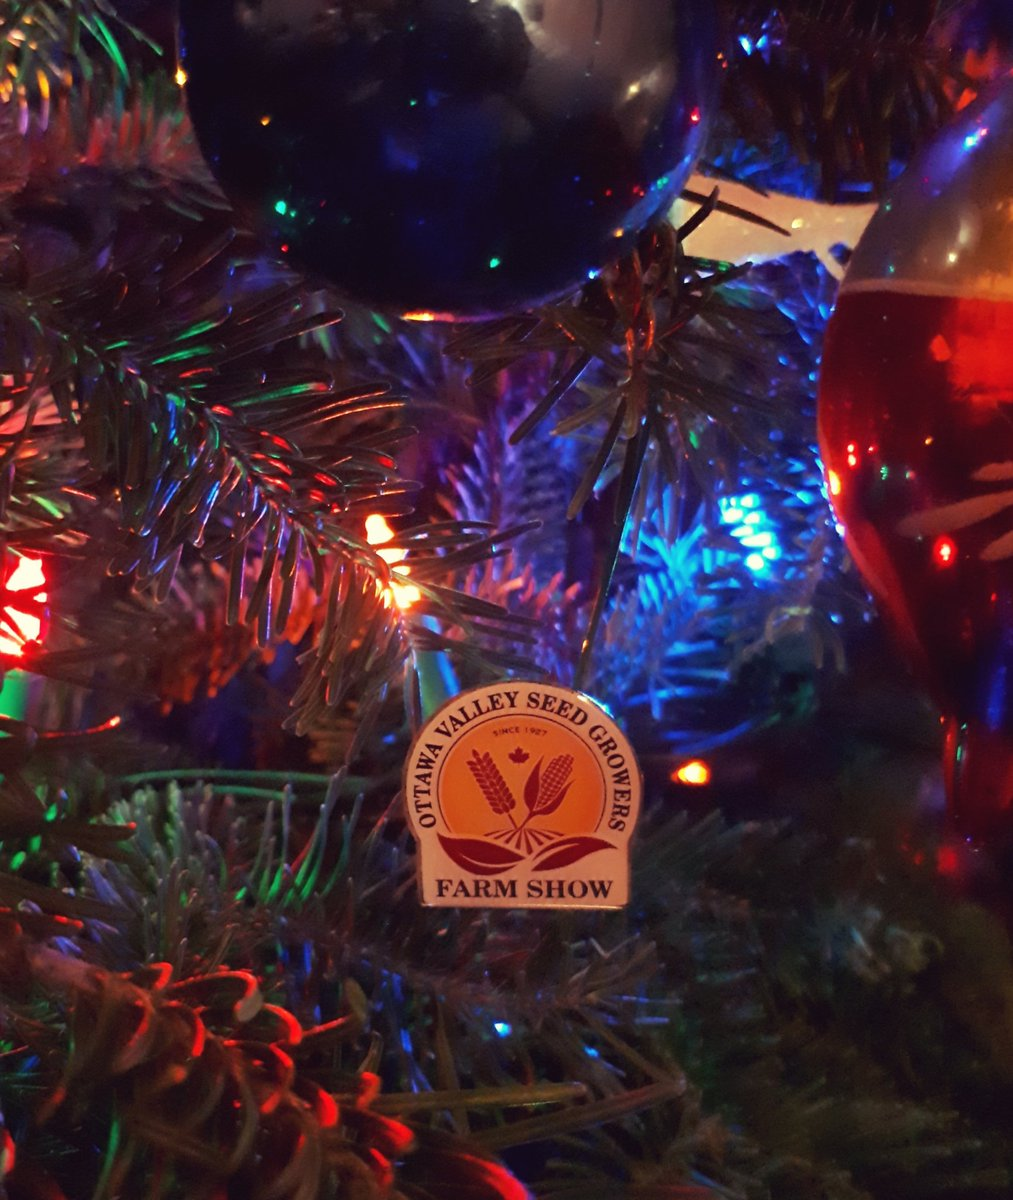 We wish you a Merry Christmas! Looking forward to #OVFS19 in the new year! #AgintheEast #ontag #NiceList https://t.co/Fv6917vkNF